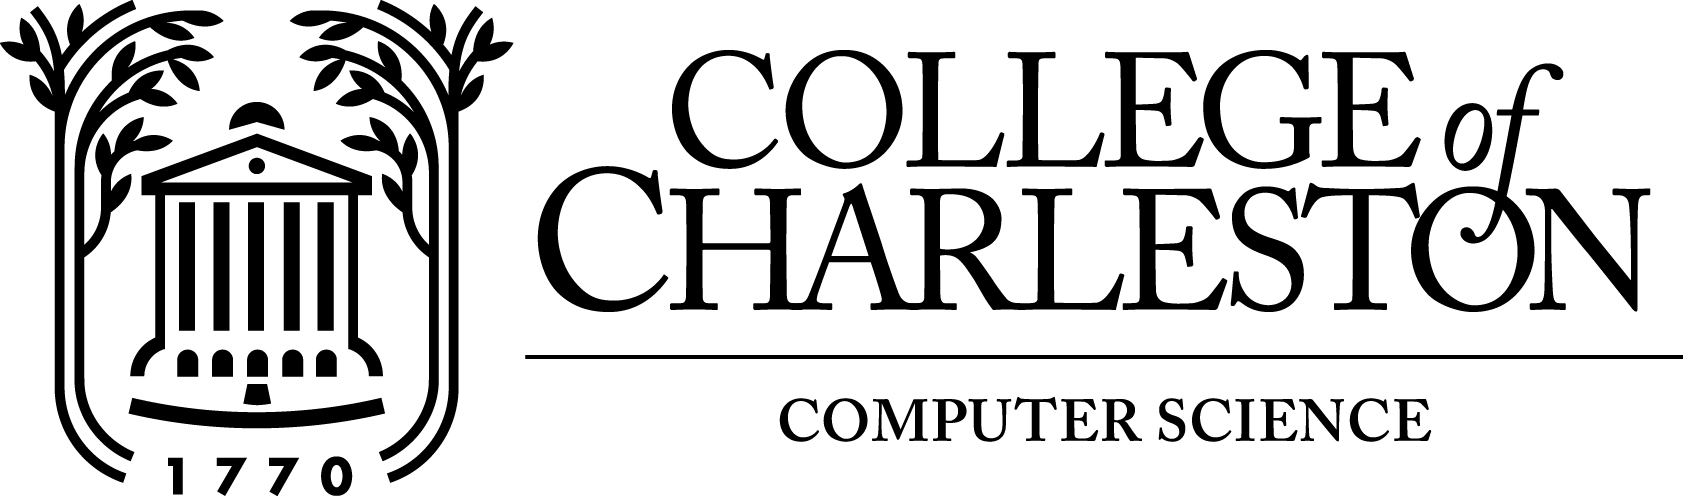 College of Charleston - Computer Science